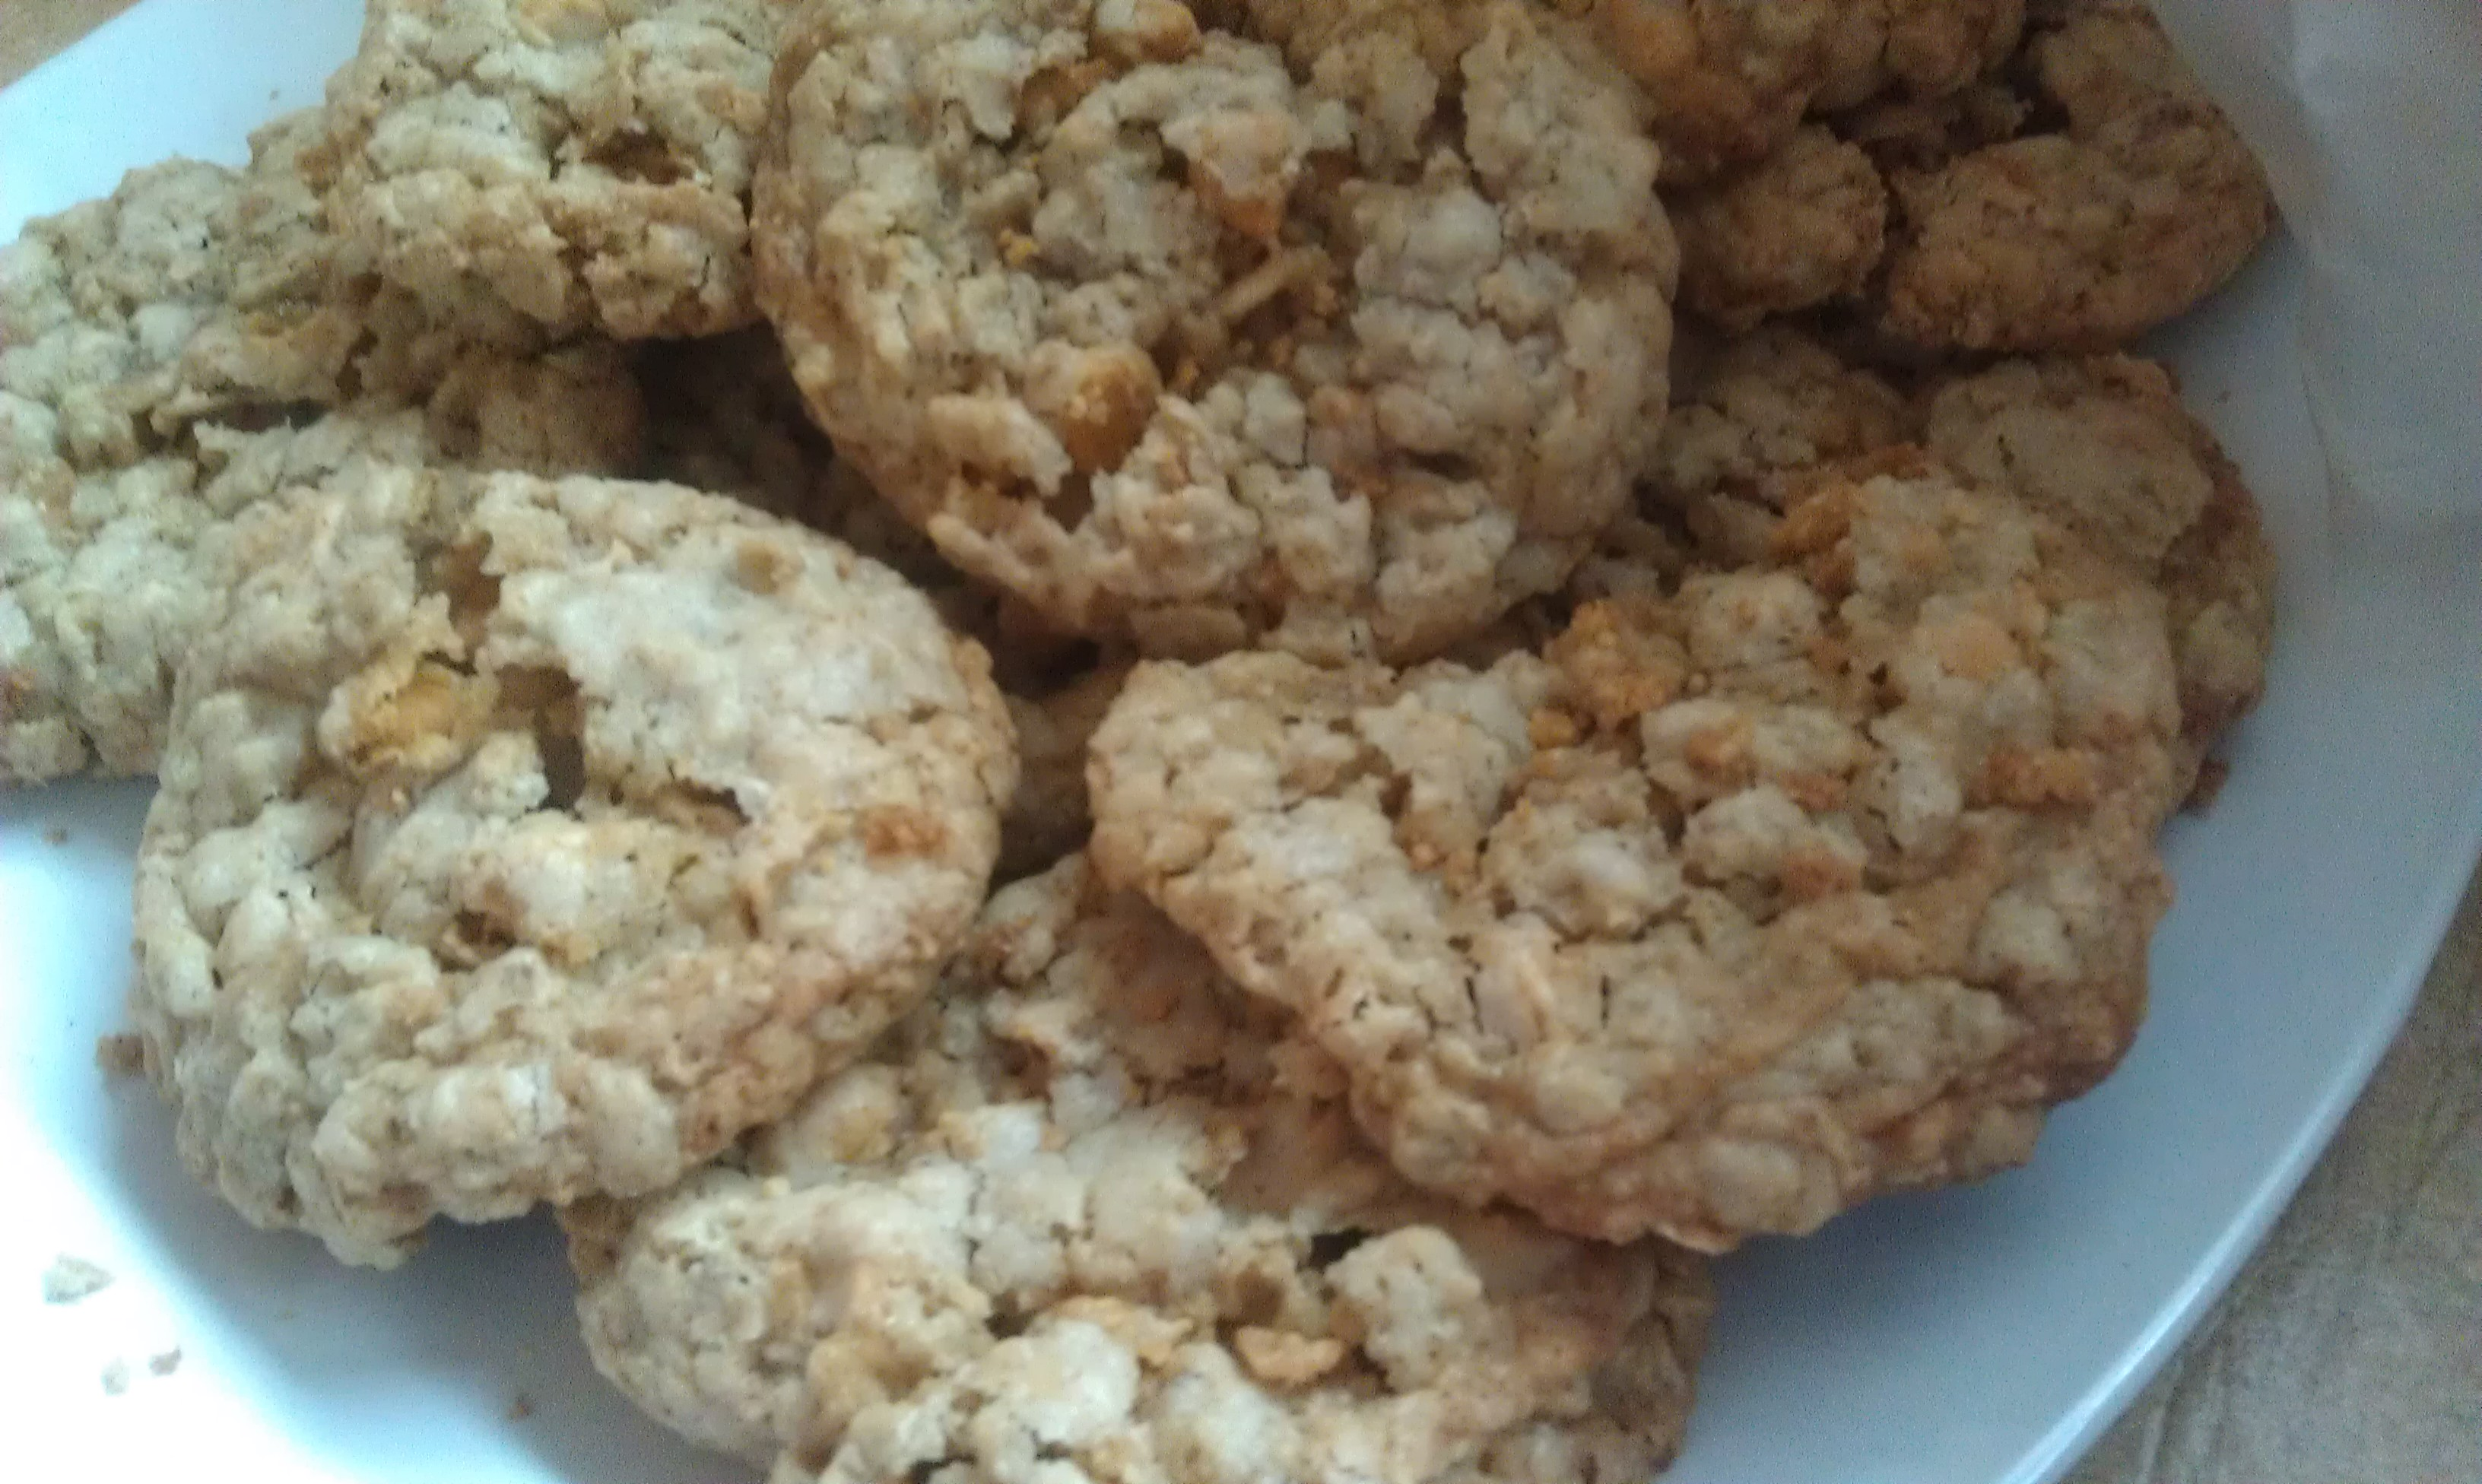 ... oatmeal cookies iced oatmeal cookies oatmeal raisin cookies oatmeal